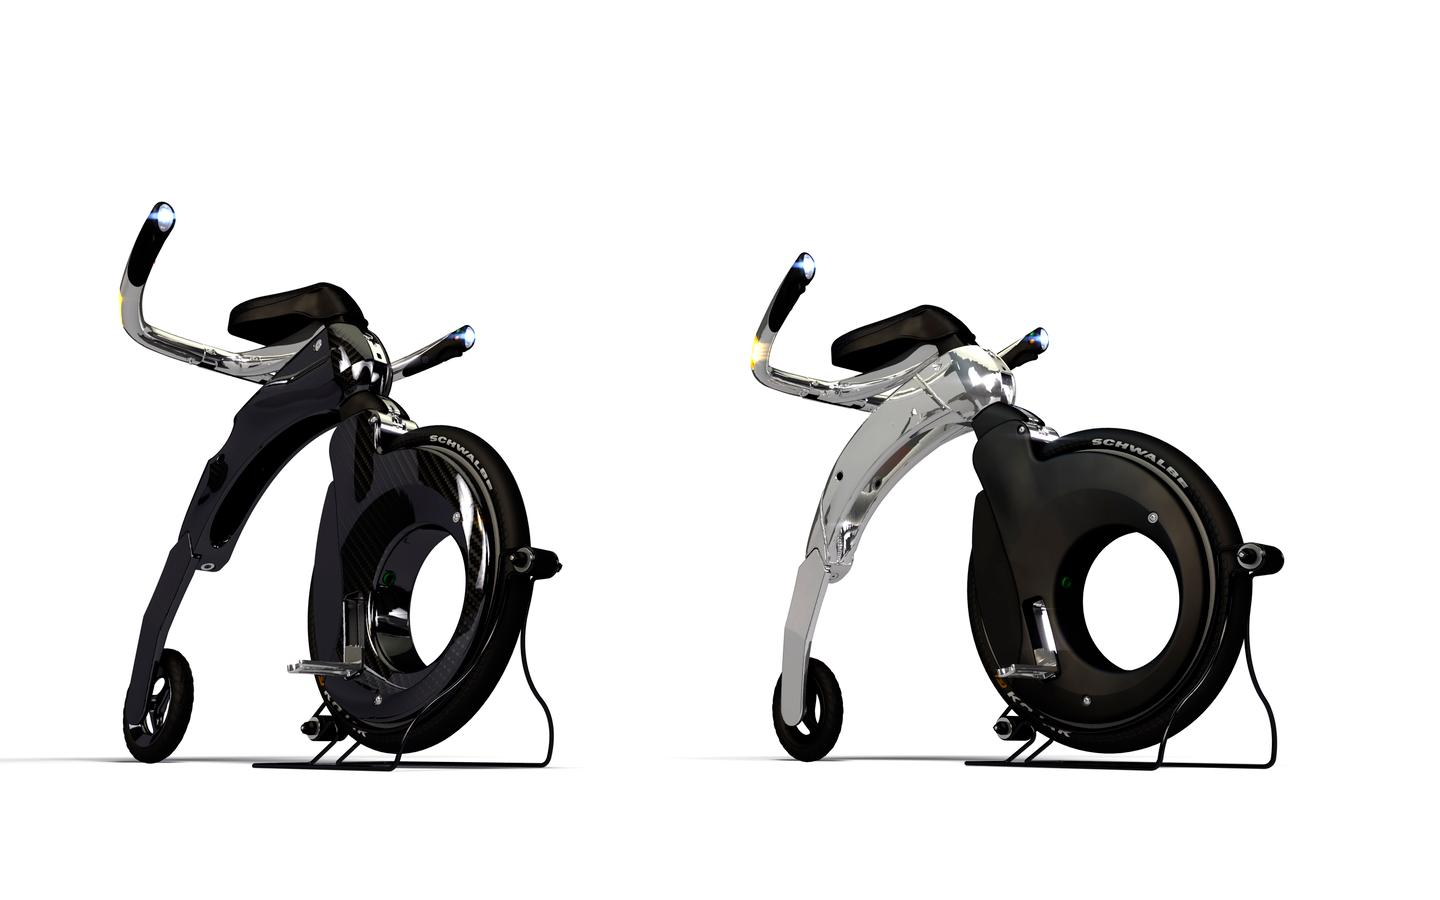 The Yikebike is a miniature, electric penny farthing made of carbon fiber capable of 25km/h (15 mph) with a range of 10 km or 20 km if you carry a spare battery